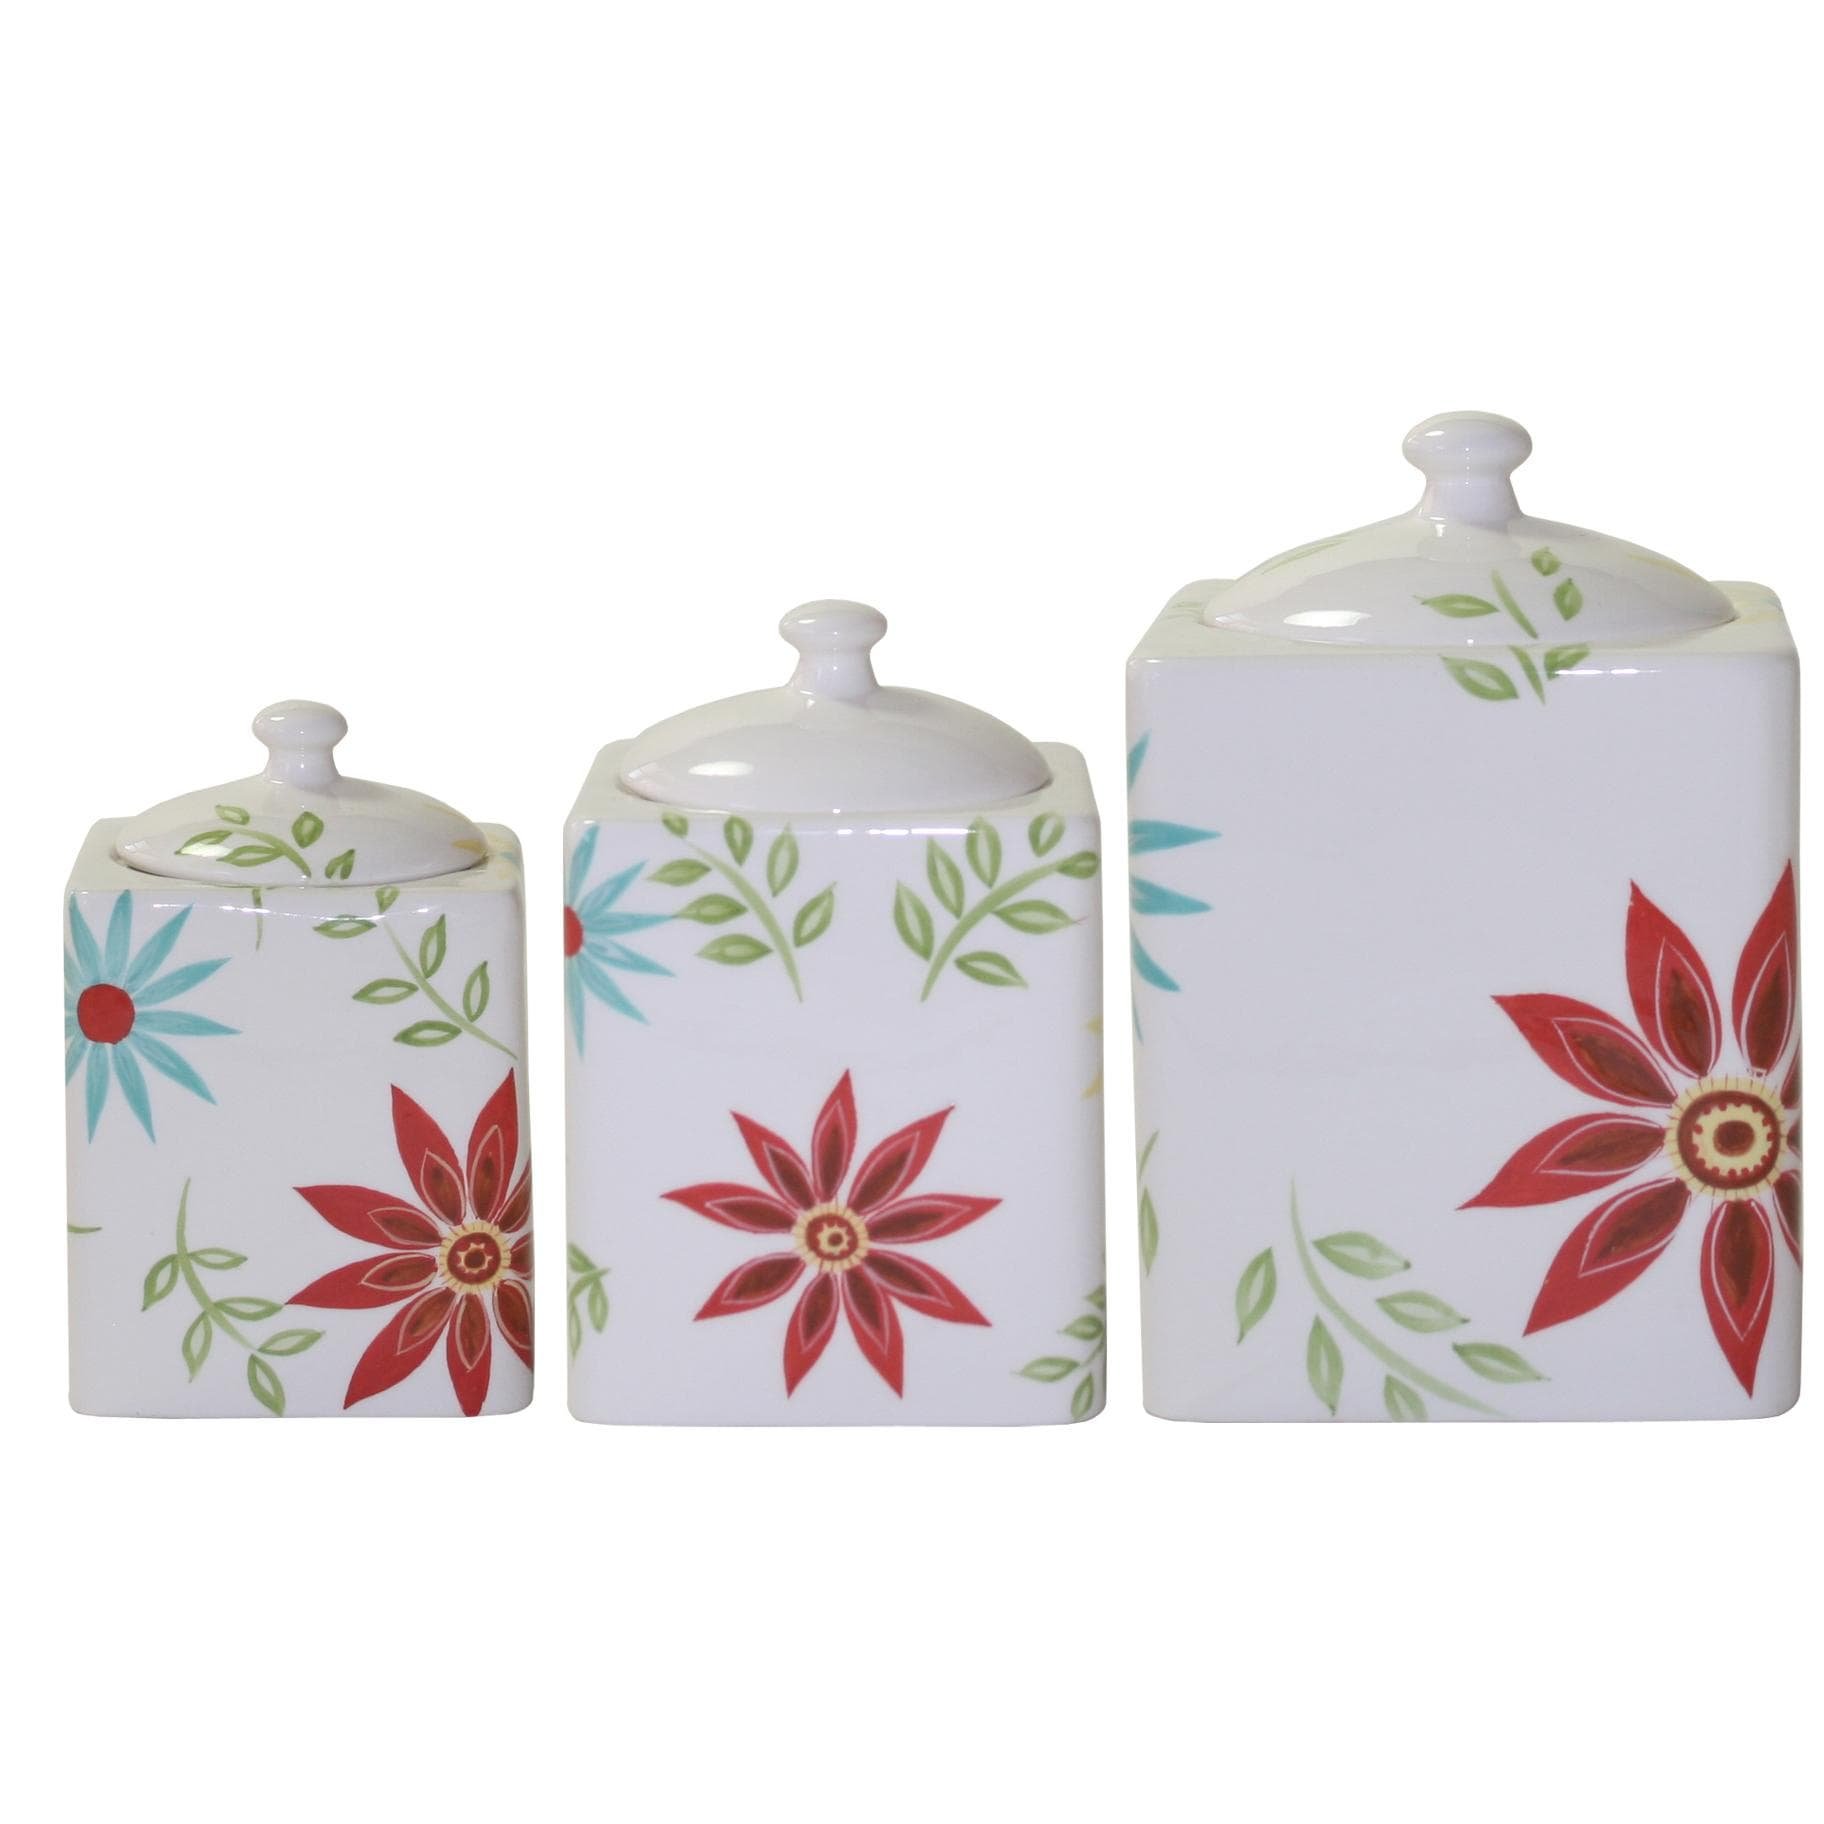 Corelle 'Happy Days' 3-piece Canister Set - Free Shipping